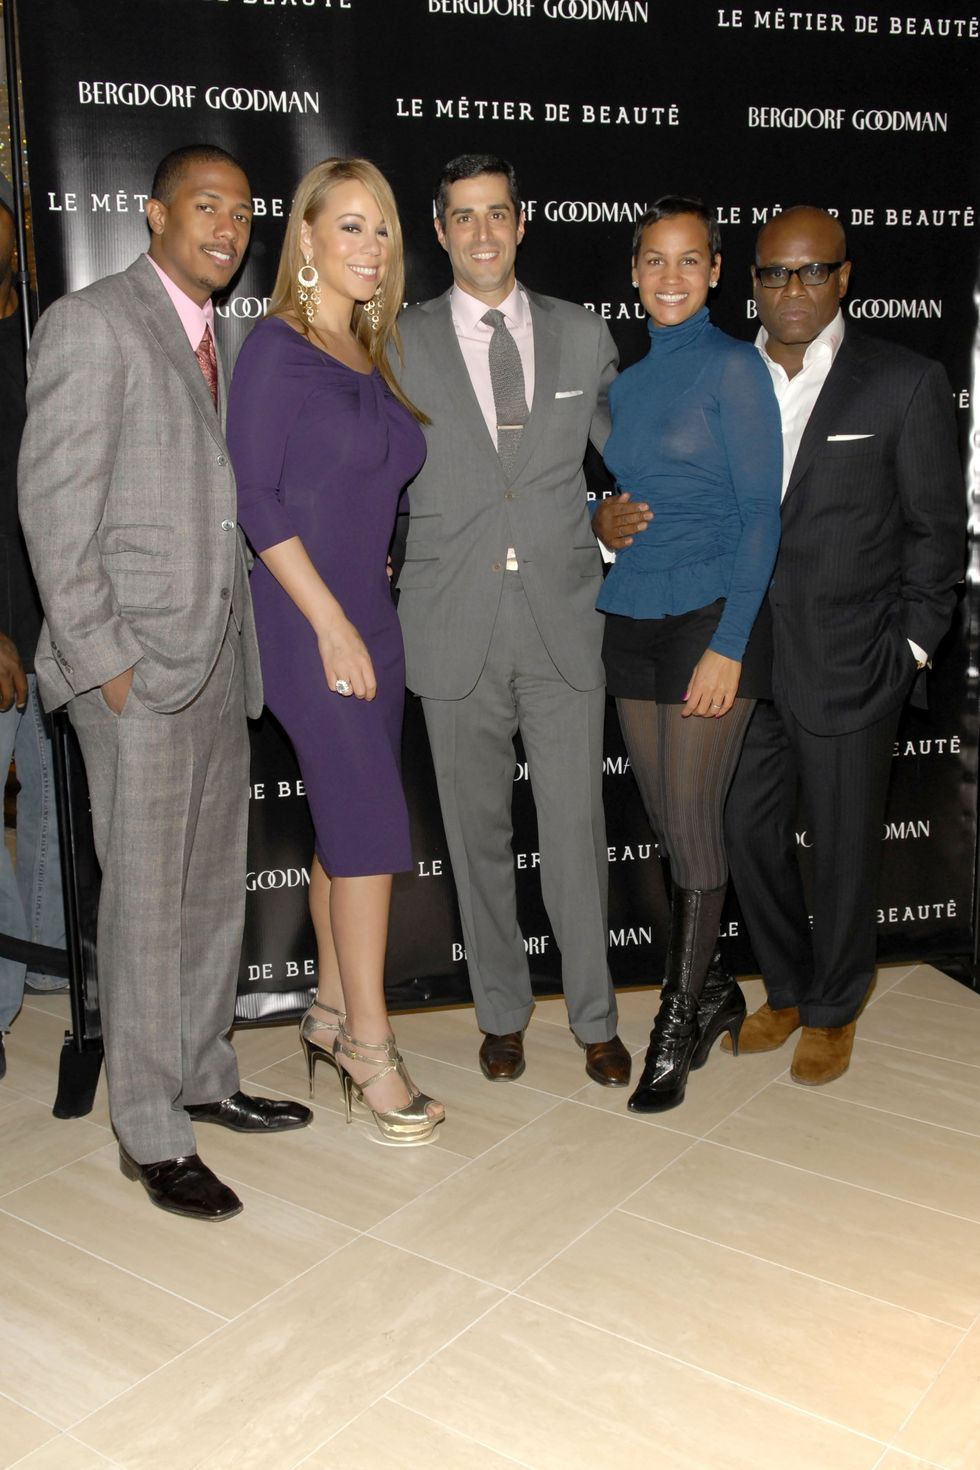 mariah-carey-le-metier-de-beaute-cosmetics-launch-in-new-york-city-01